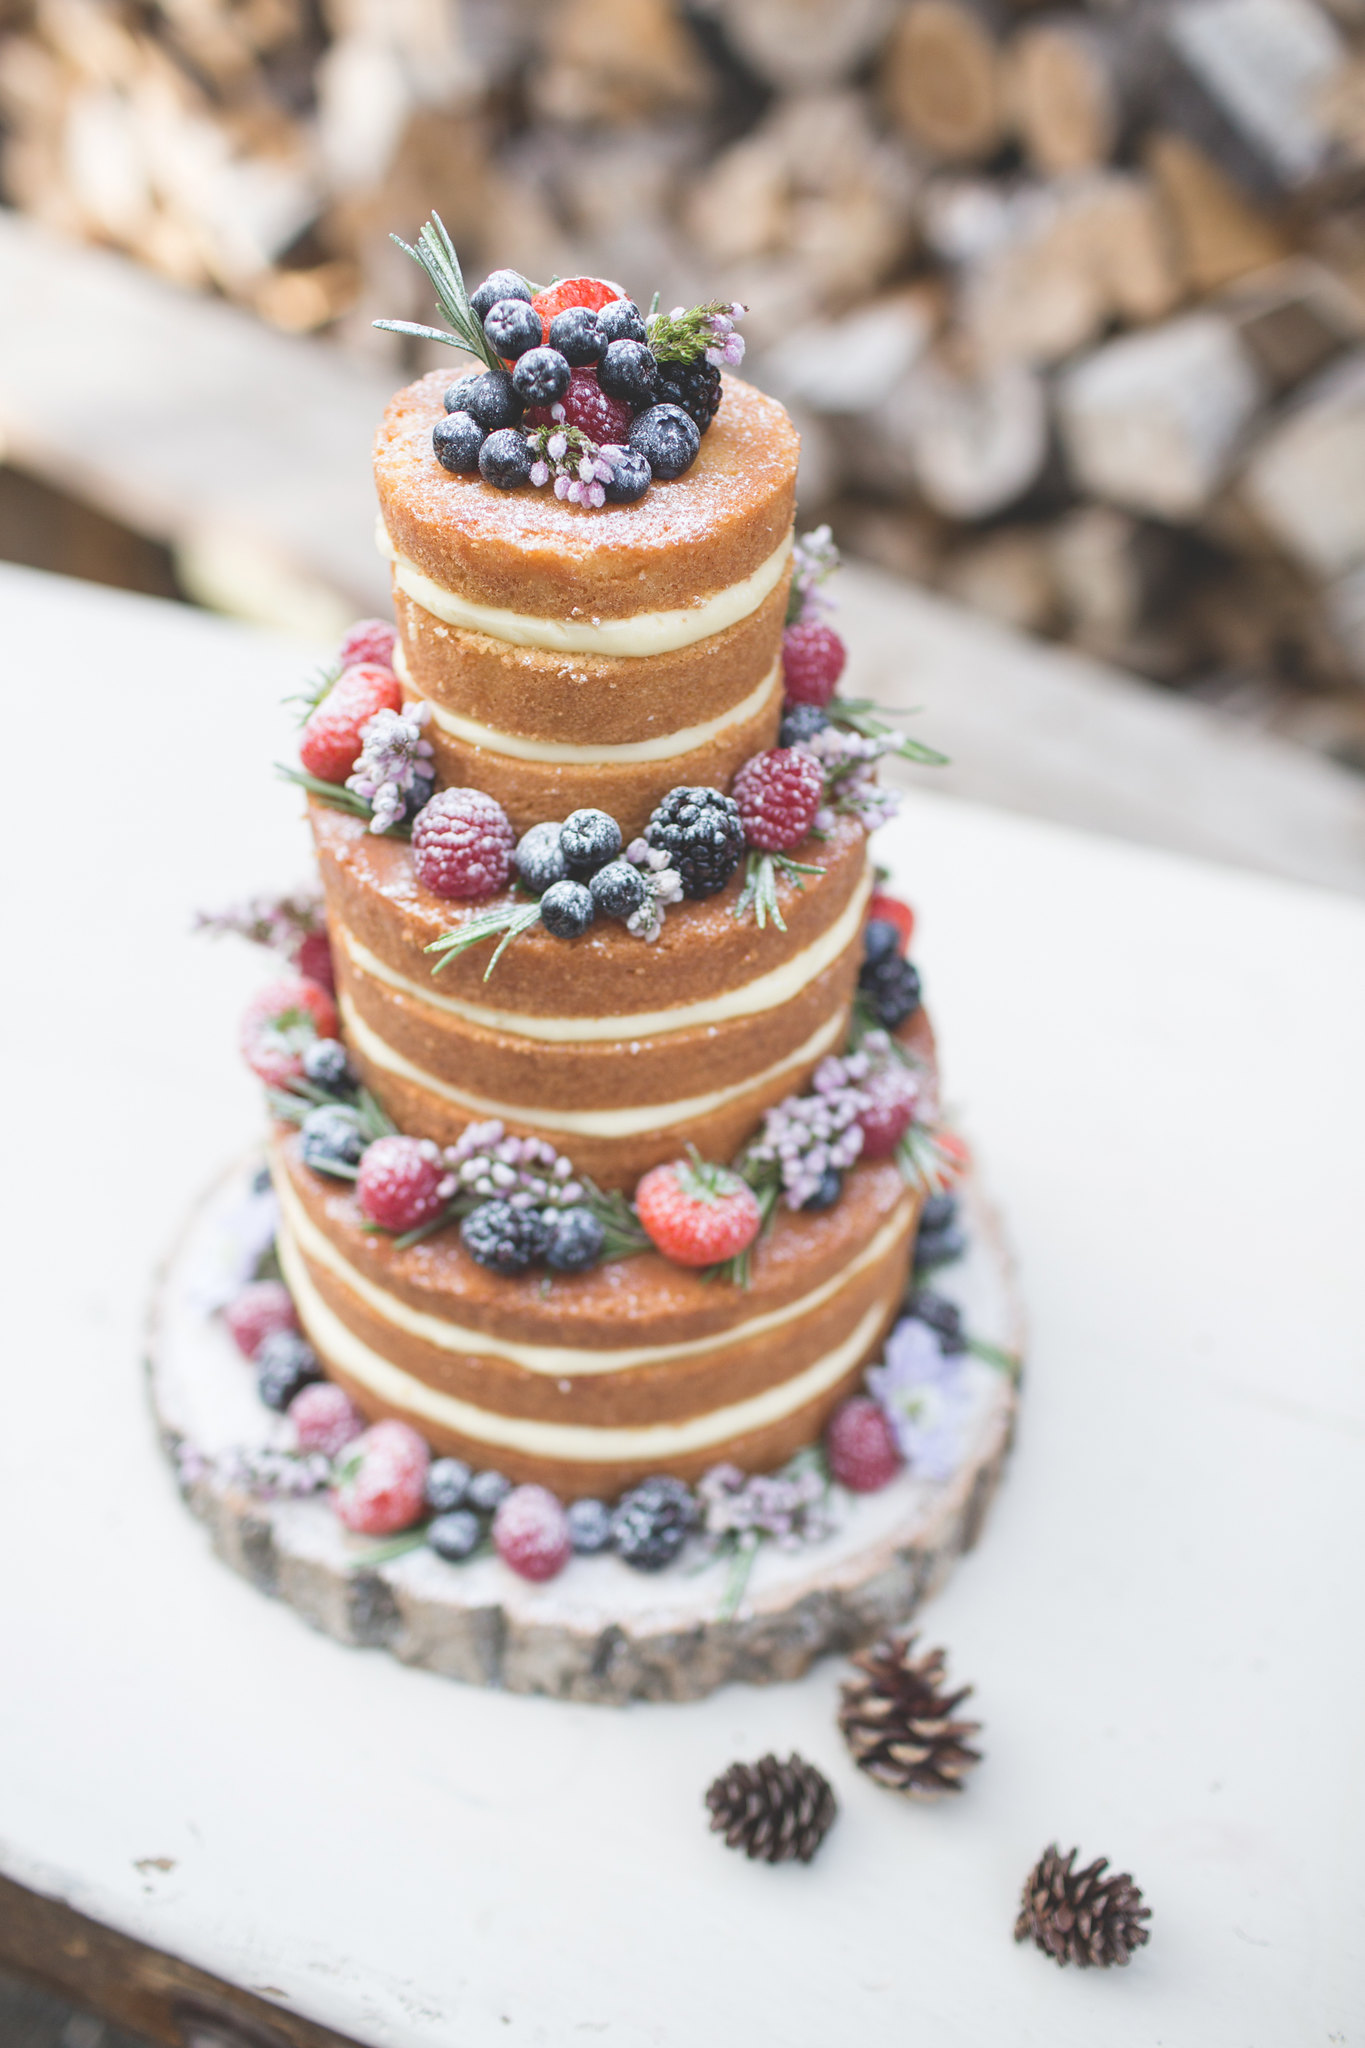 Taystful, nakedcake, weddingcake, naturalweddingcake, fruitweddingcake, wedding, krystelcouture,